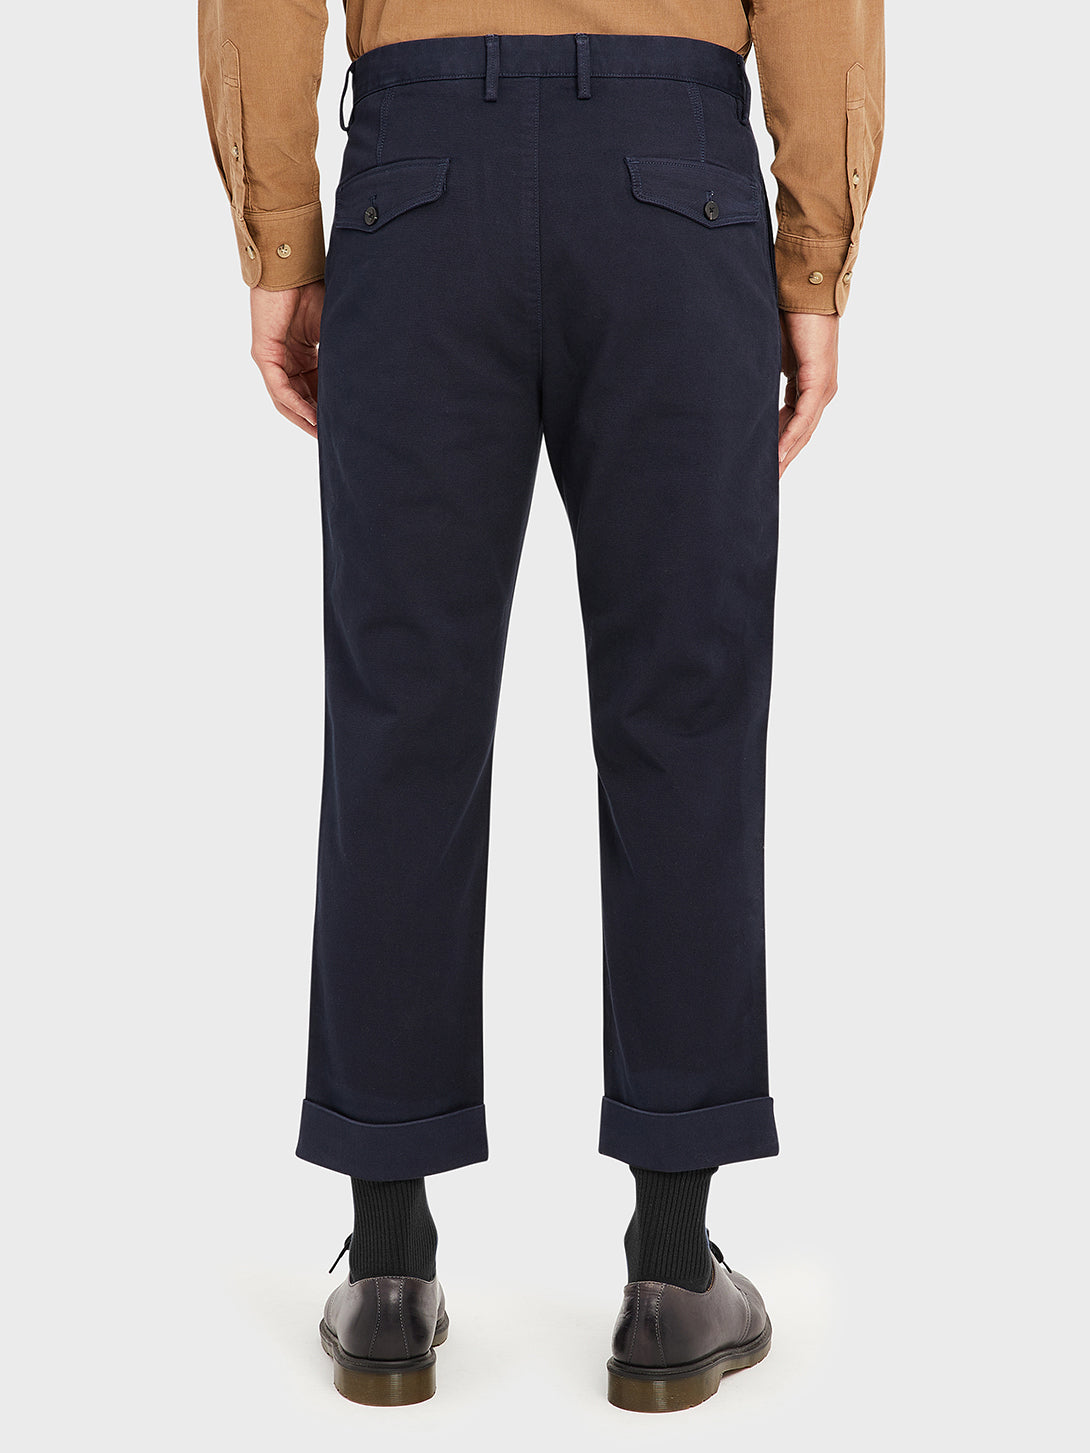 ONS Clothing Men's MODERN CHINO in NAVY